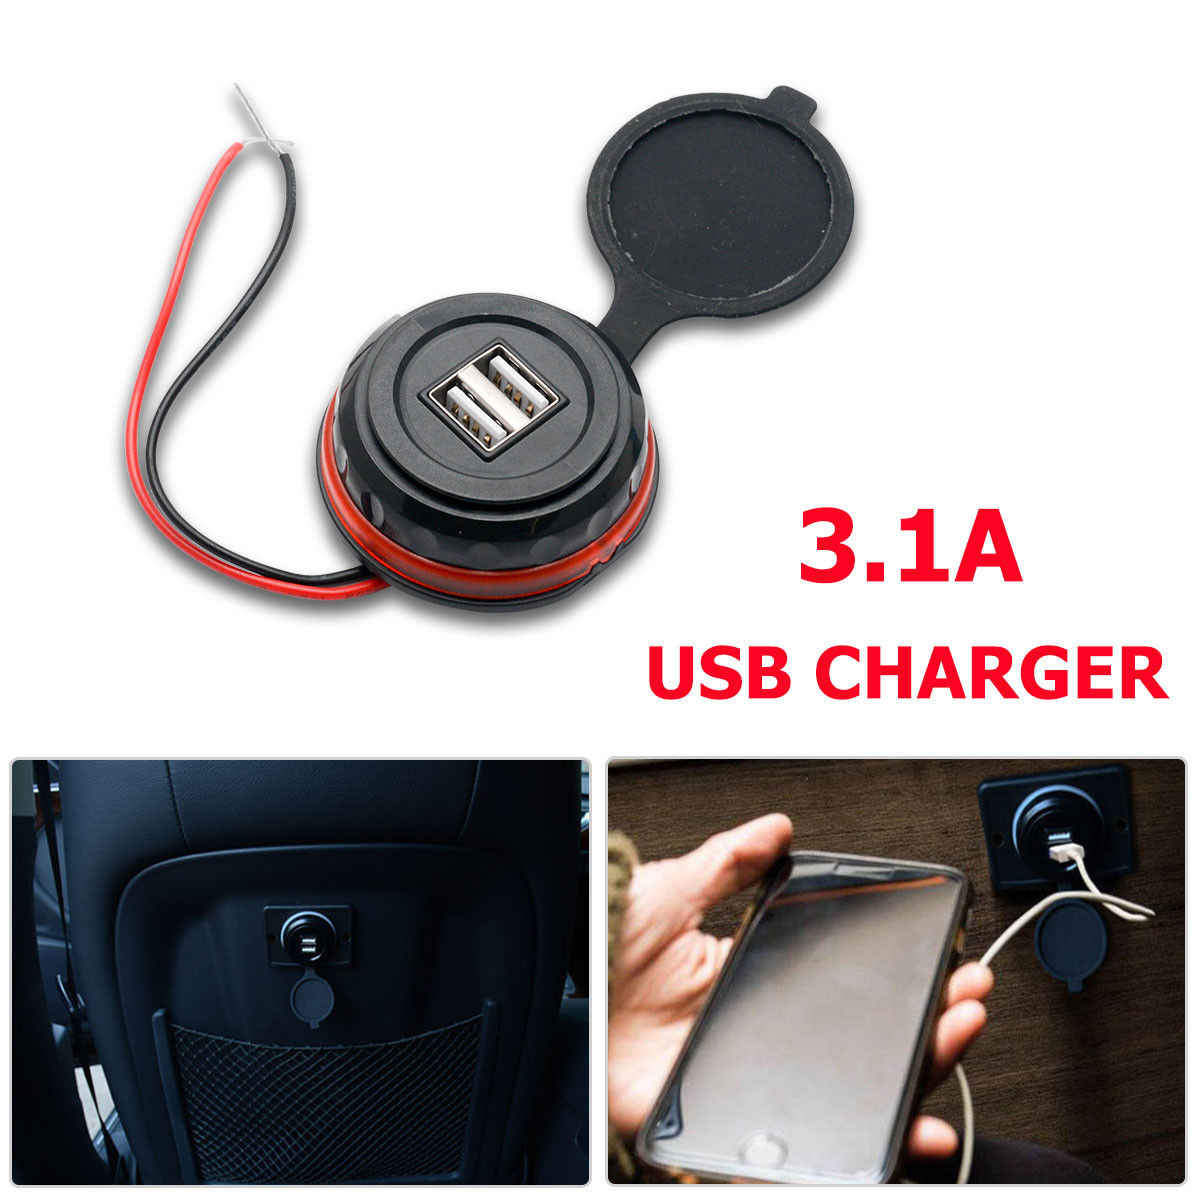 12V Dual USB Car Charger Waterproof 2 Port Adapter Power Socket Charging Panel Mount for Vehicle Boat Truck Motorcycle